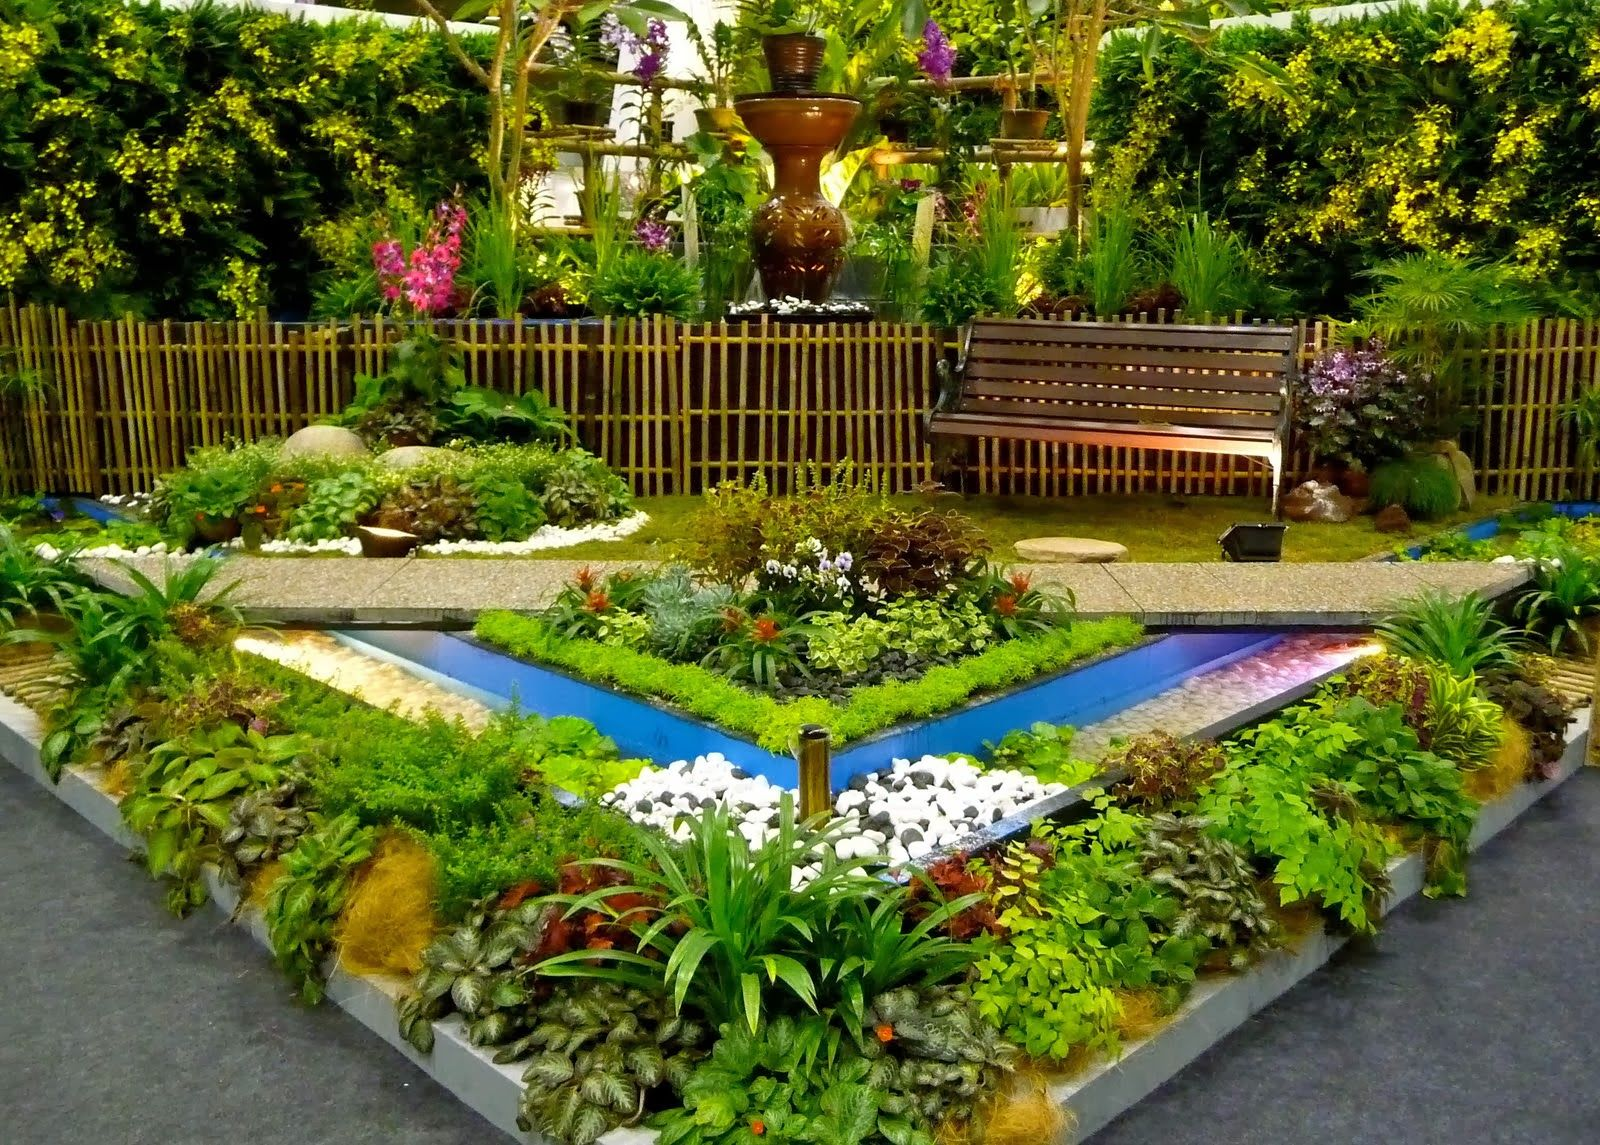 Best landscaping ideas i have ever seen wow design for Outdoor landscaping ideas